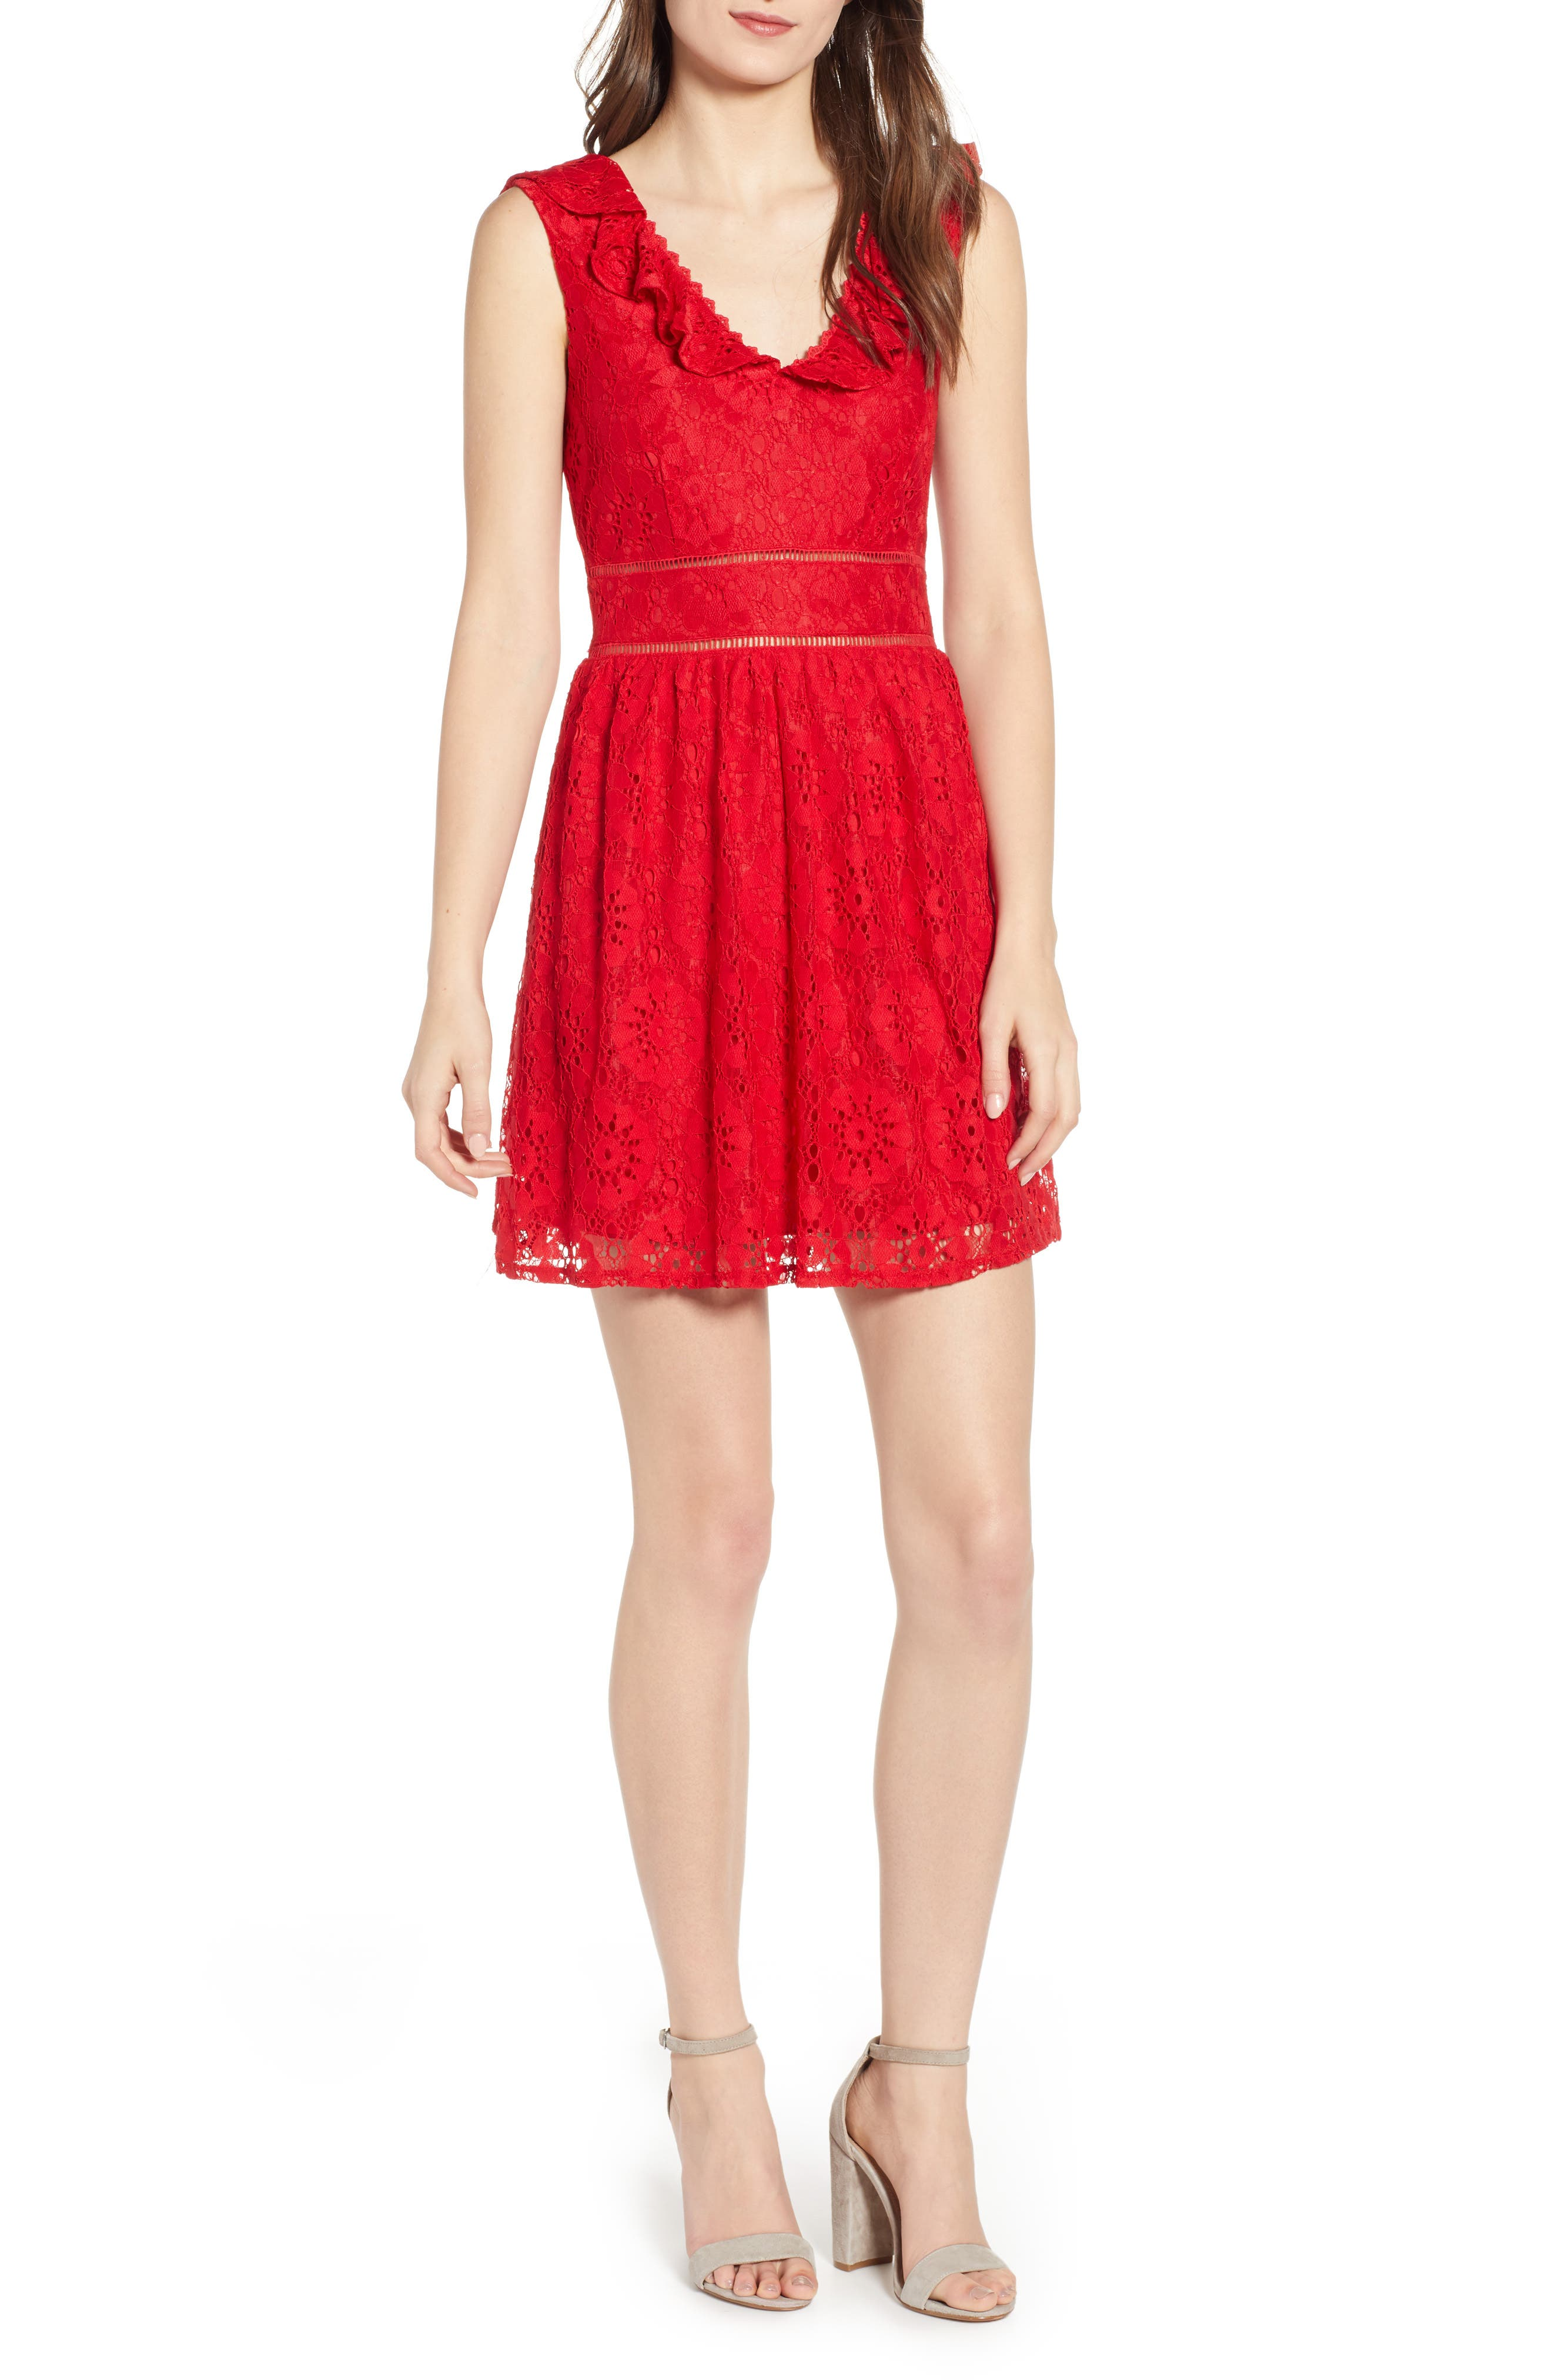 SPEECHLESS, Lace Ruffle Neck Skater Dress, Main thumbnail 1, color, RED